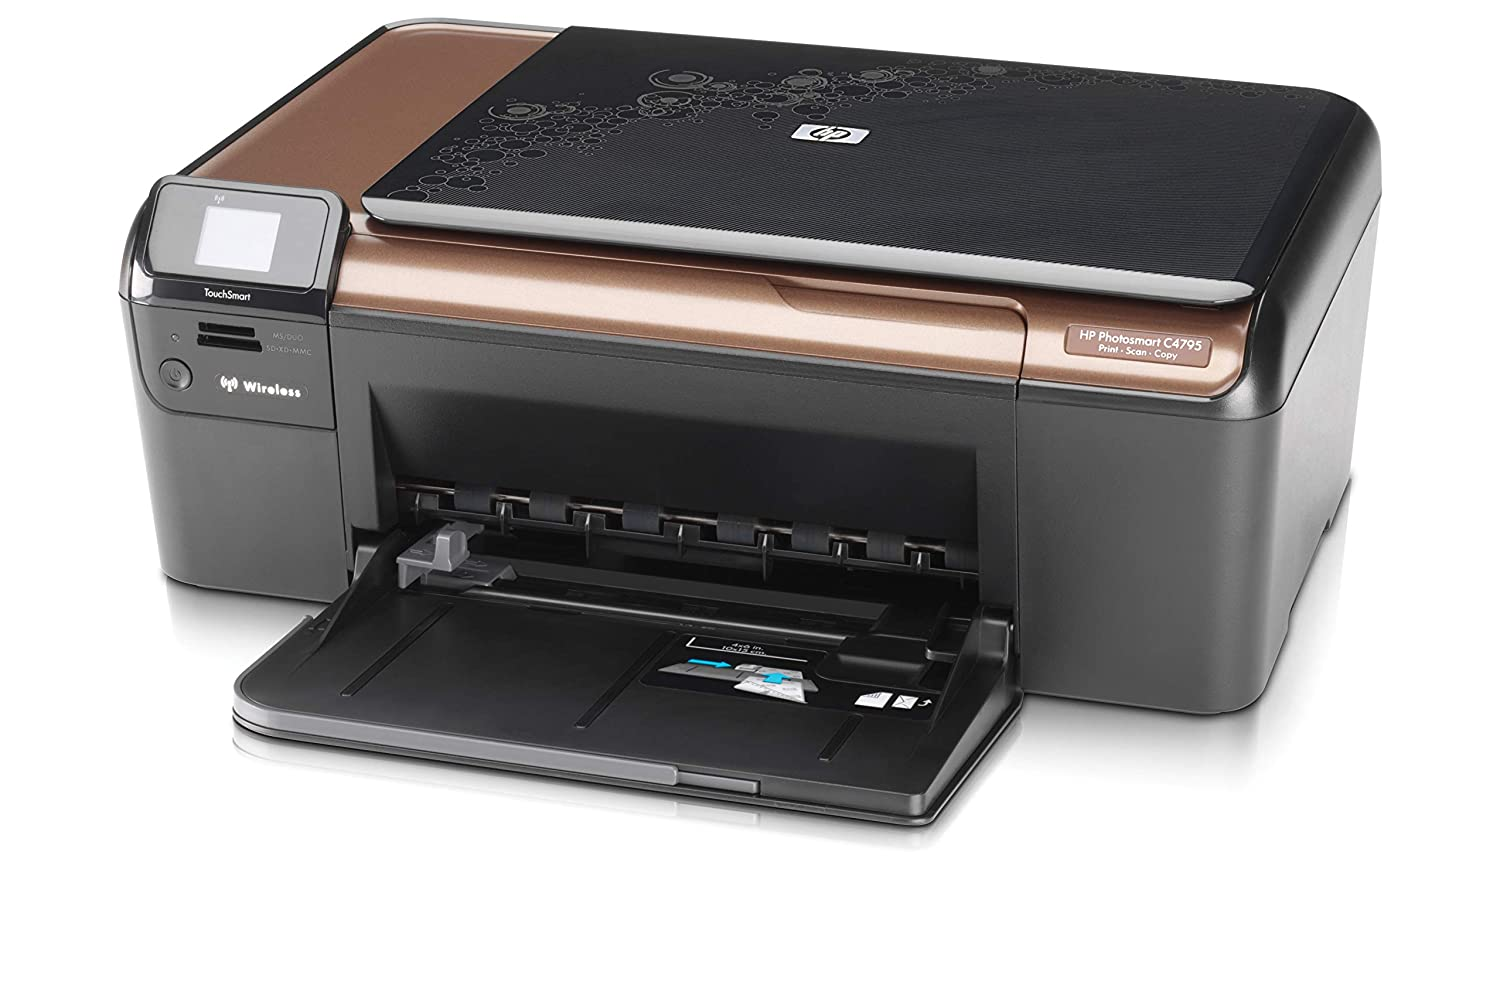 HP PHOTOSMART C4795 WIRELESS PRINTER DRIVER DOWNLOAD FREE